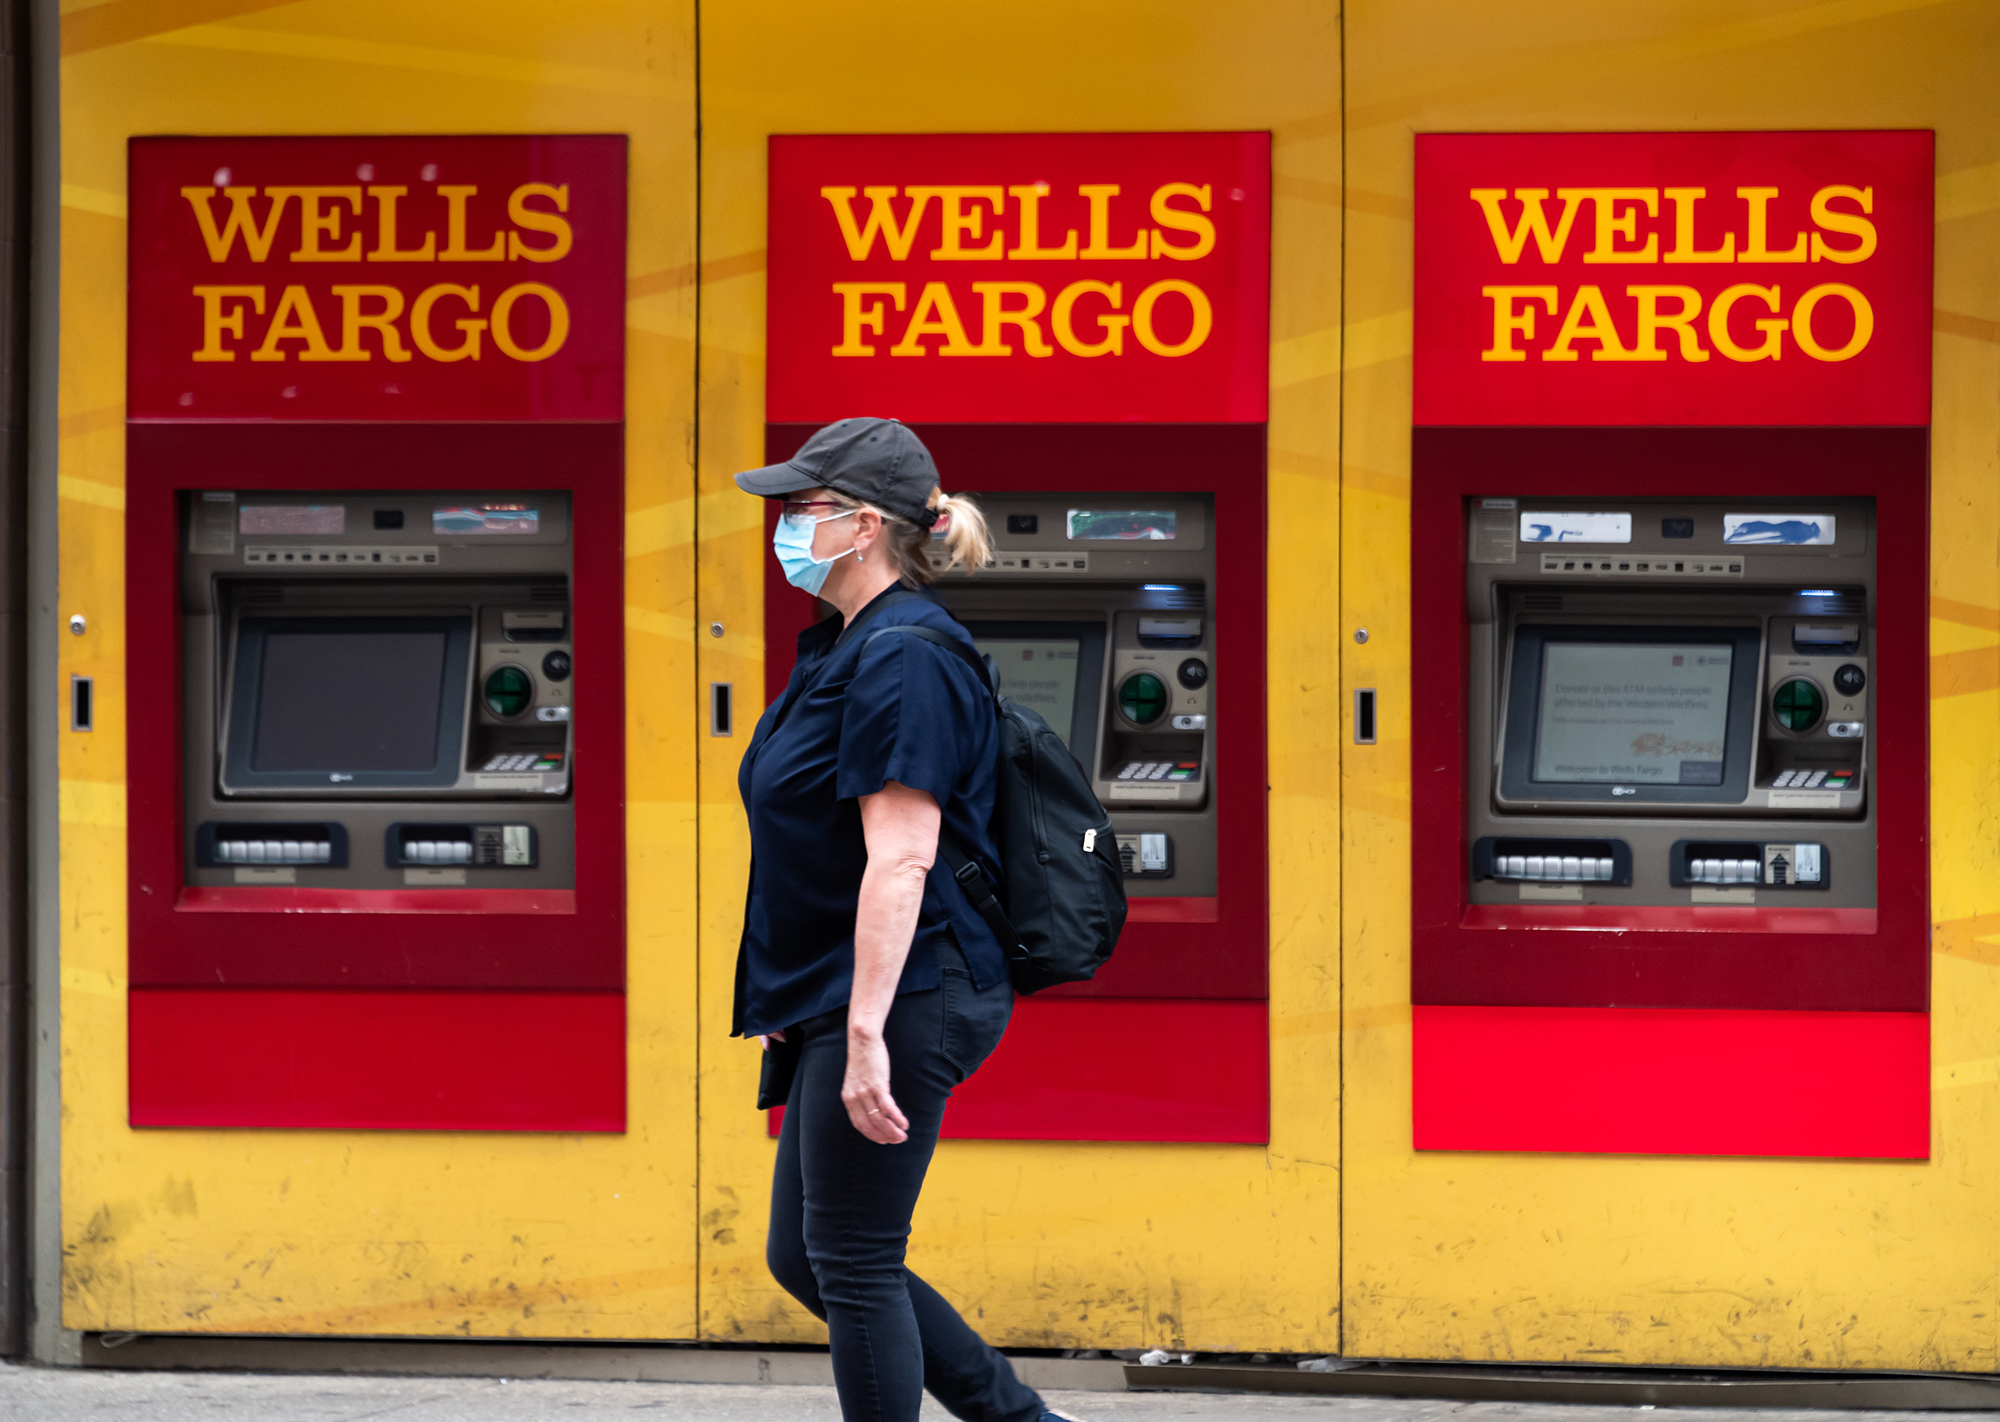 Exclusive: Wells Fargo is joining the green wave sweeping finance